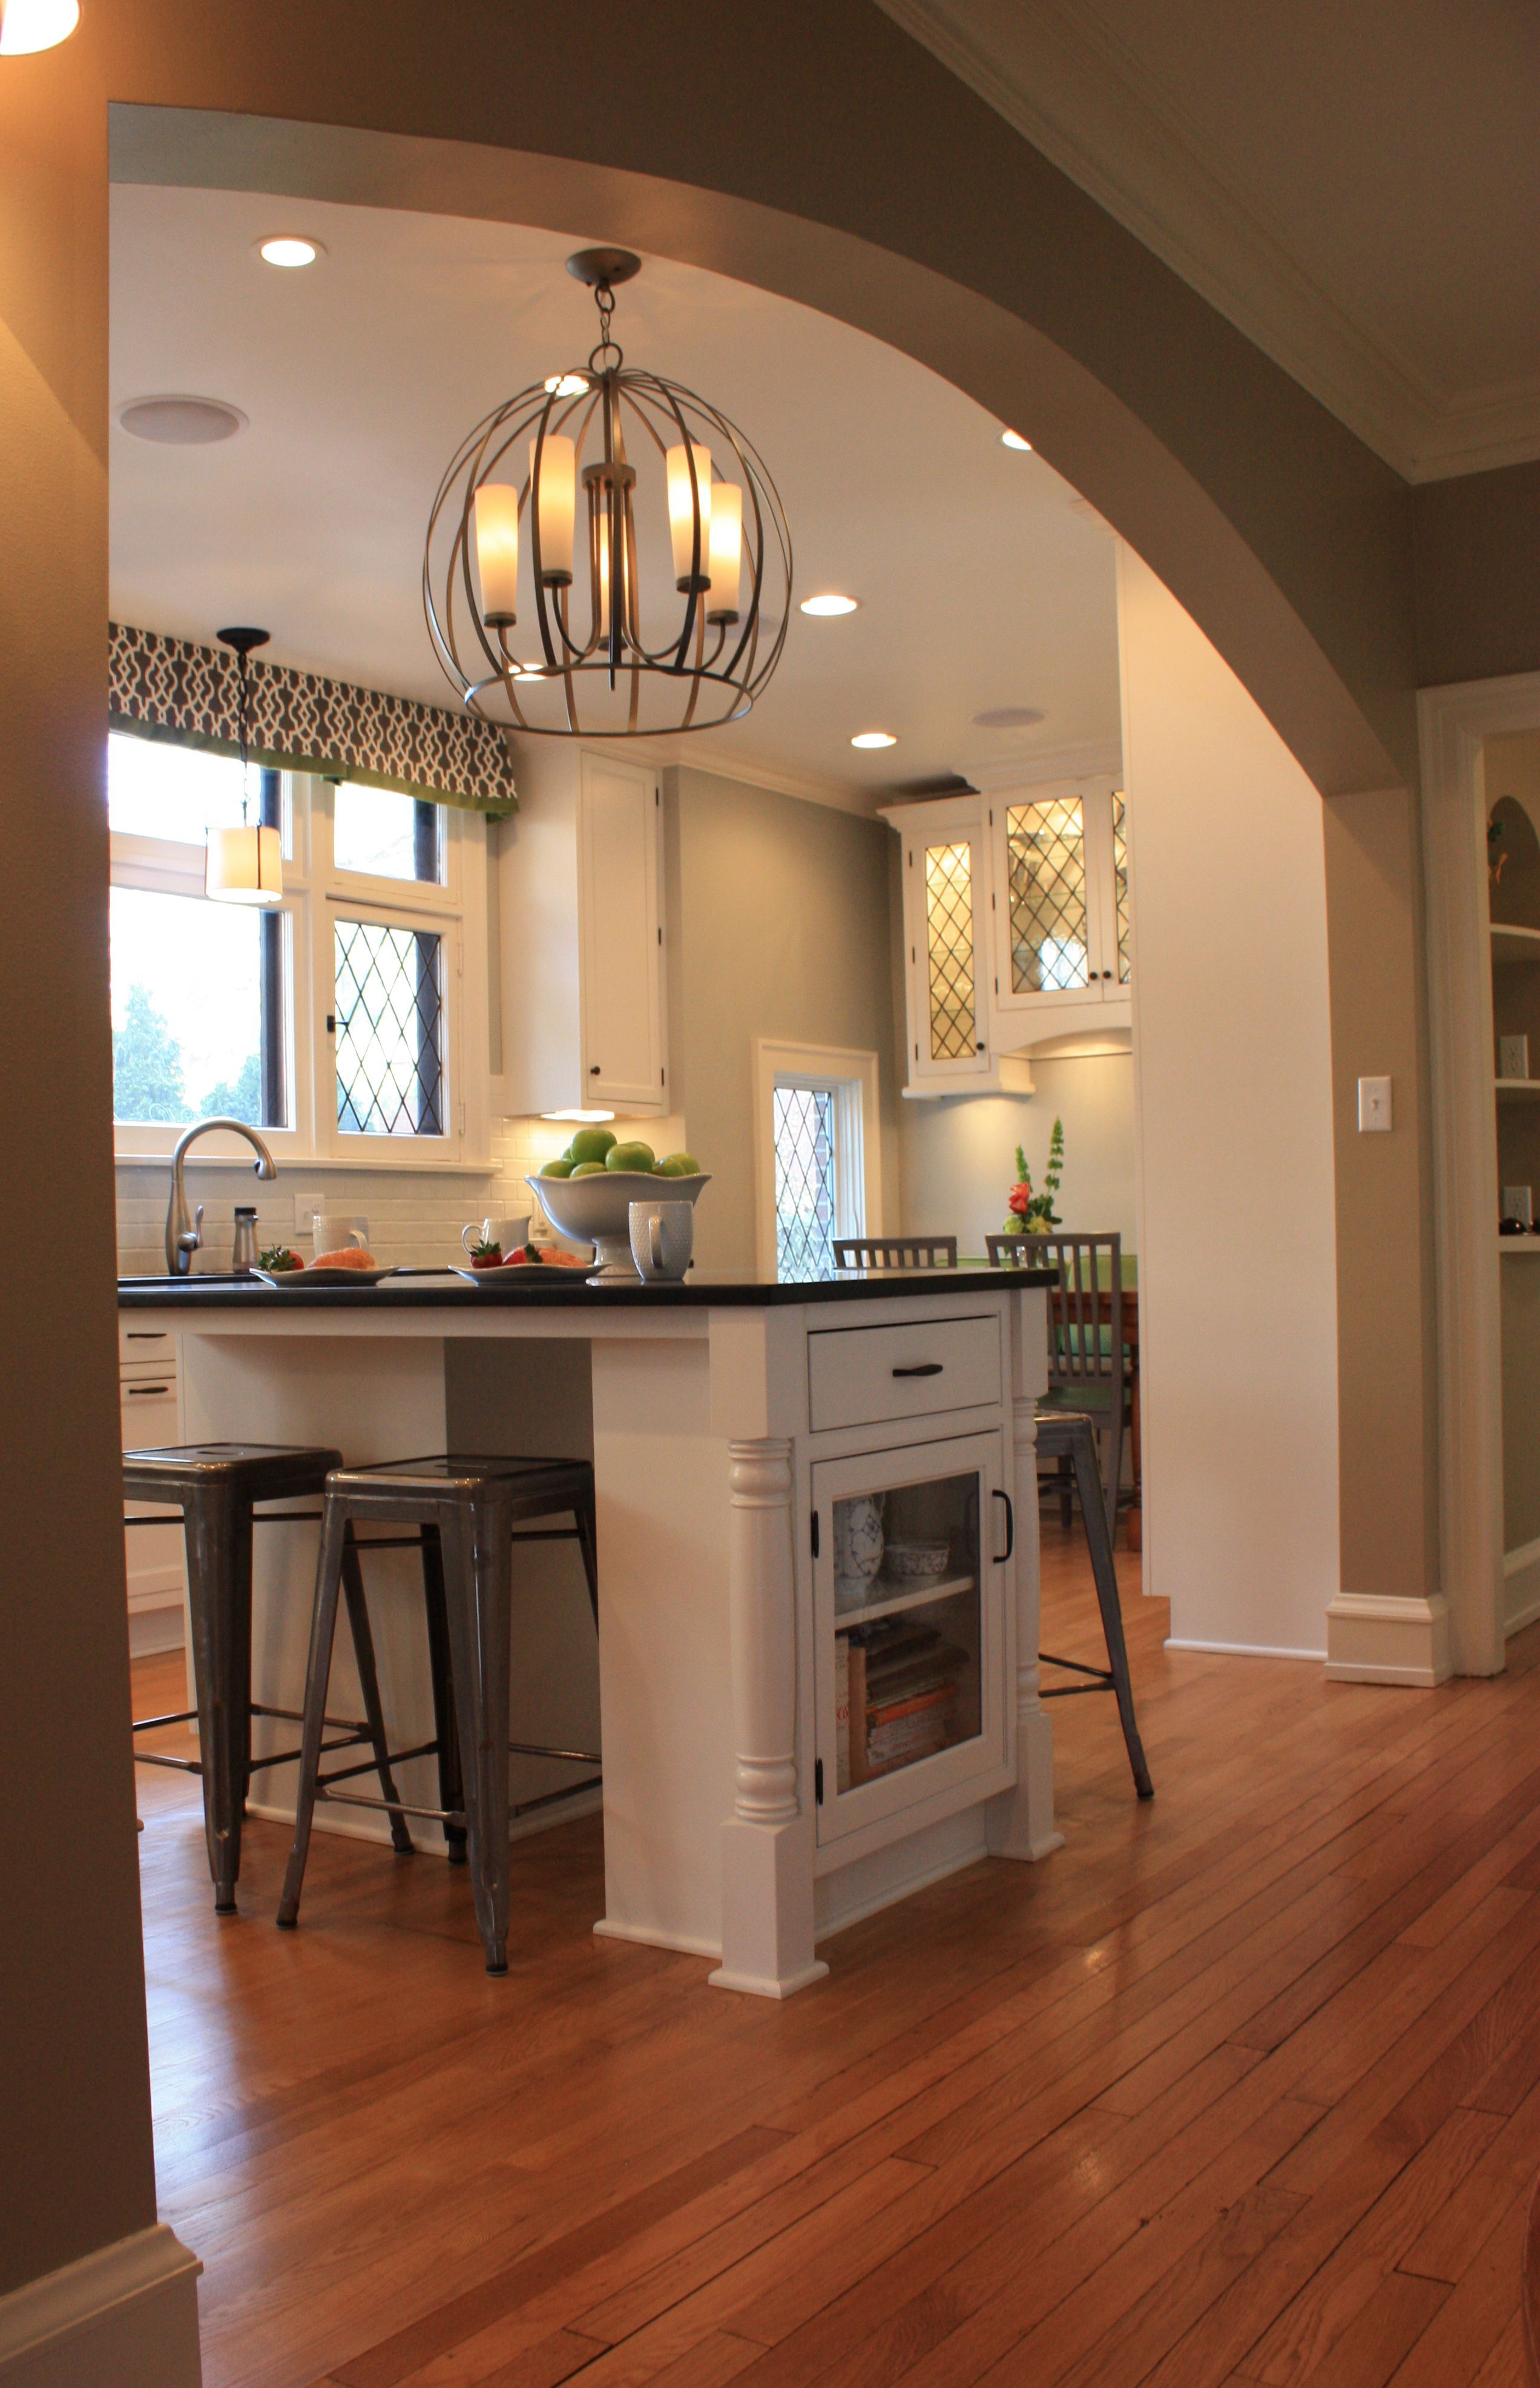 fabulous ideas can change your life ikea kitchen remodel